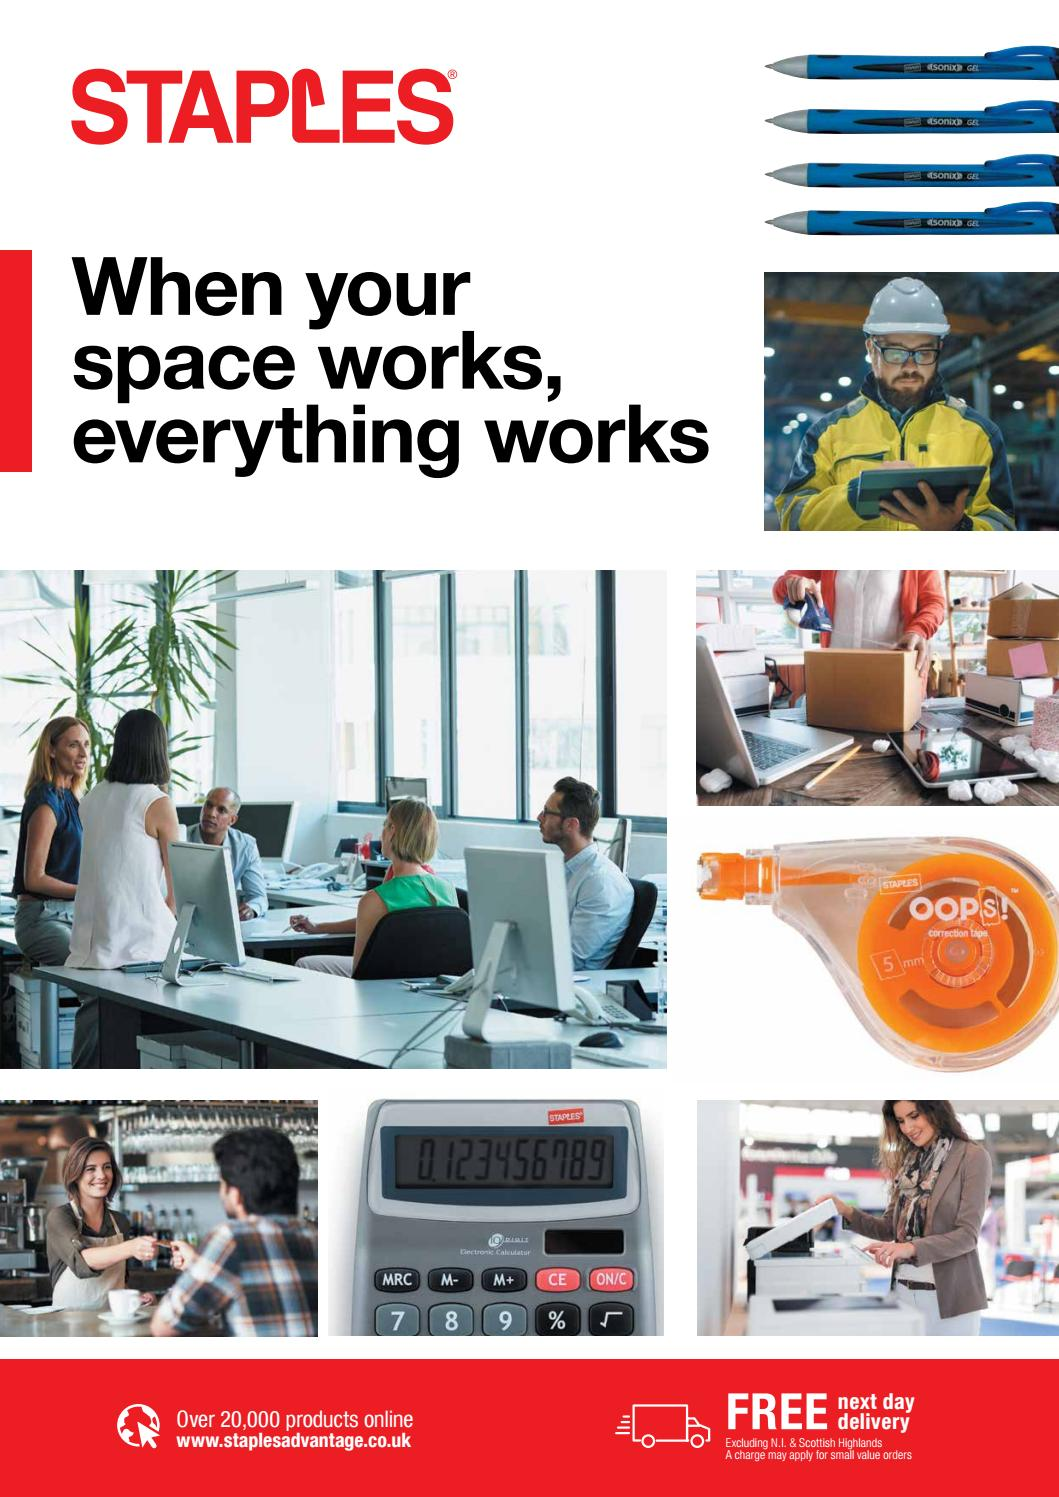 c76a32754a8 When your space works, everything works by Staples - issuu